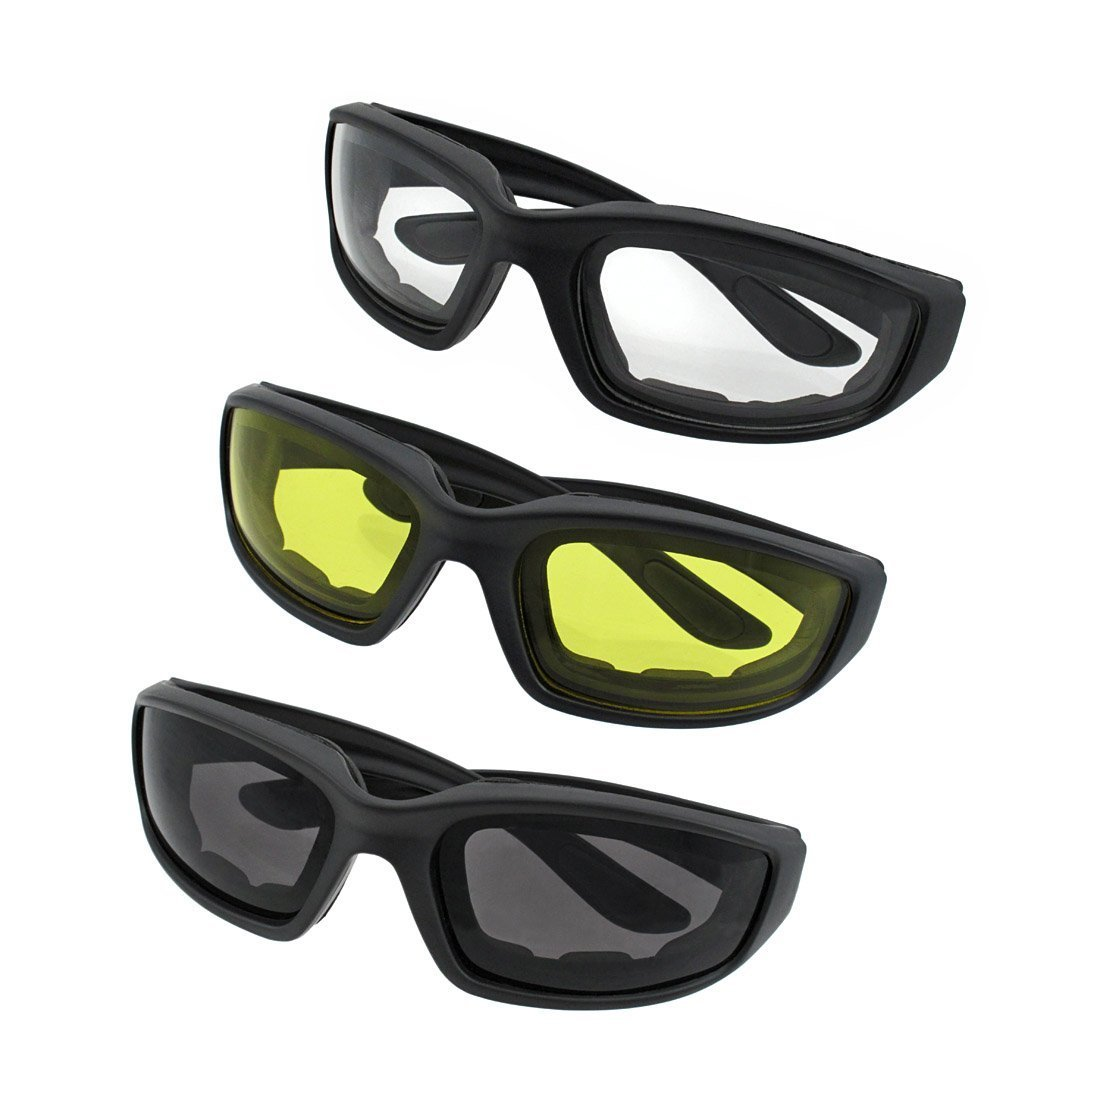 d27377a2aa Amazon.com  BundlePower 3 Pair Motorcycle Riding Glasses Smoke Clear  Yellow  Industrial   Scientific